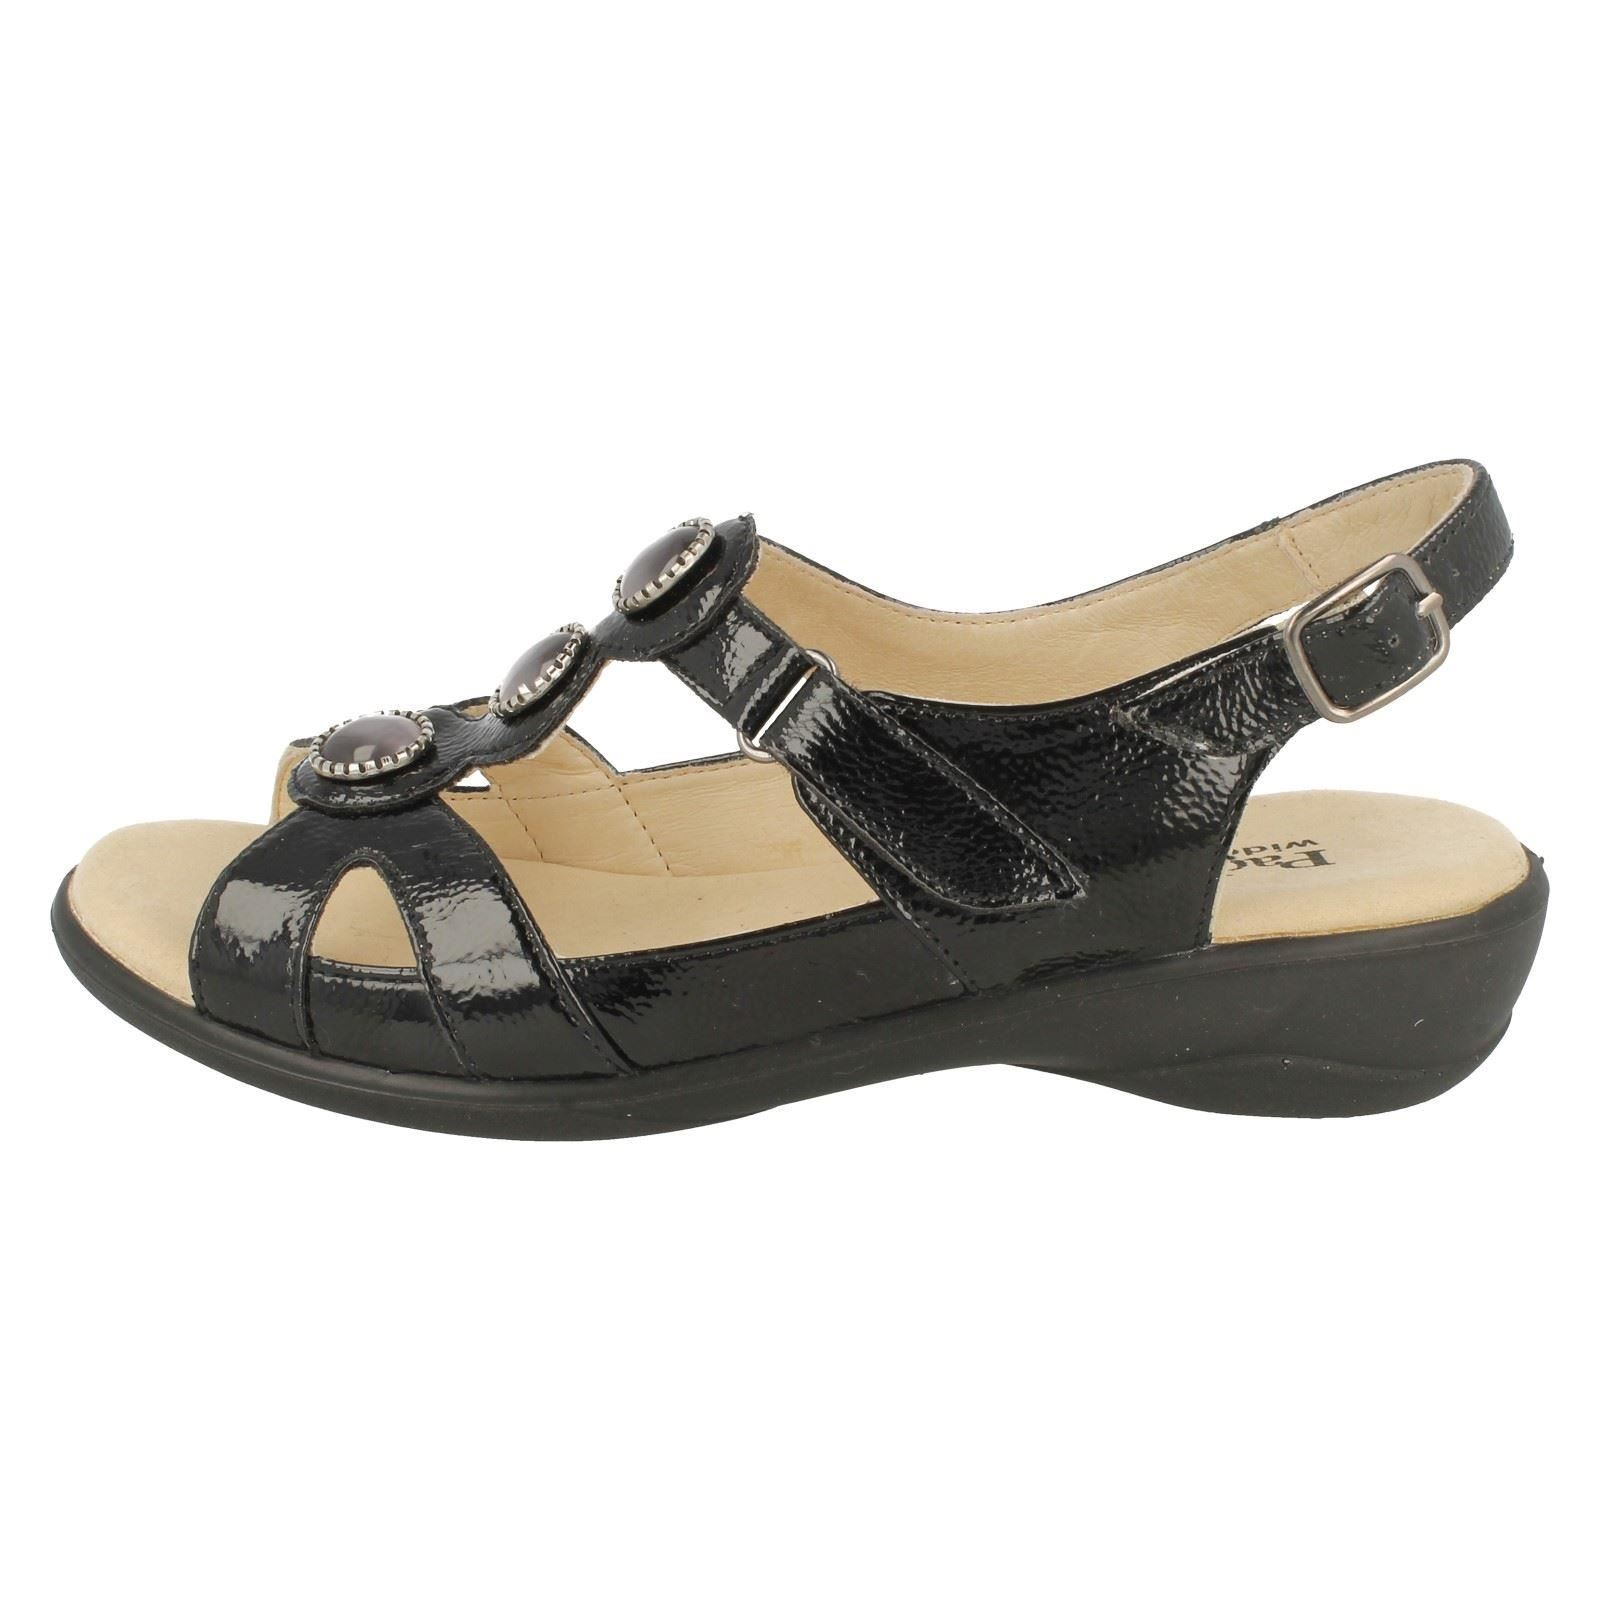 Strap Black Sandals Padders Precious Fitting Back Ladies Wide Open wnxXRB77Pq